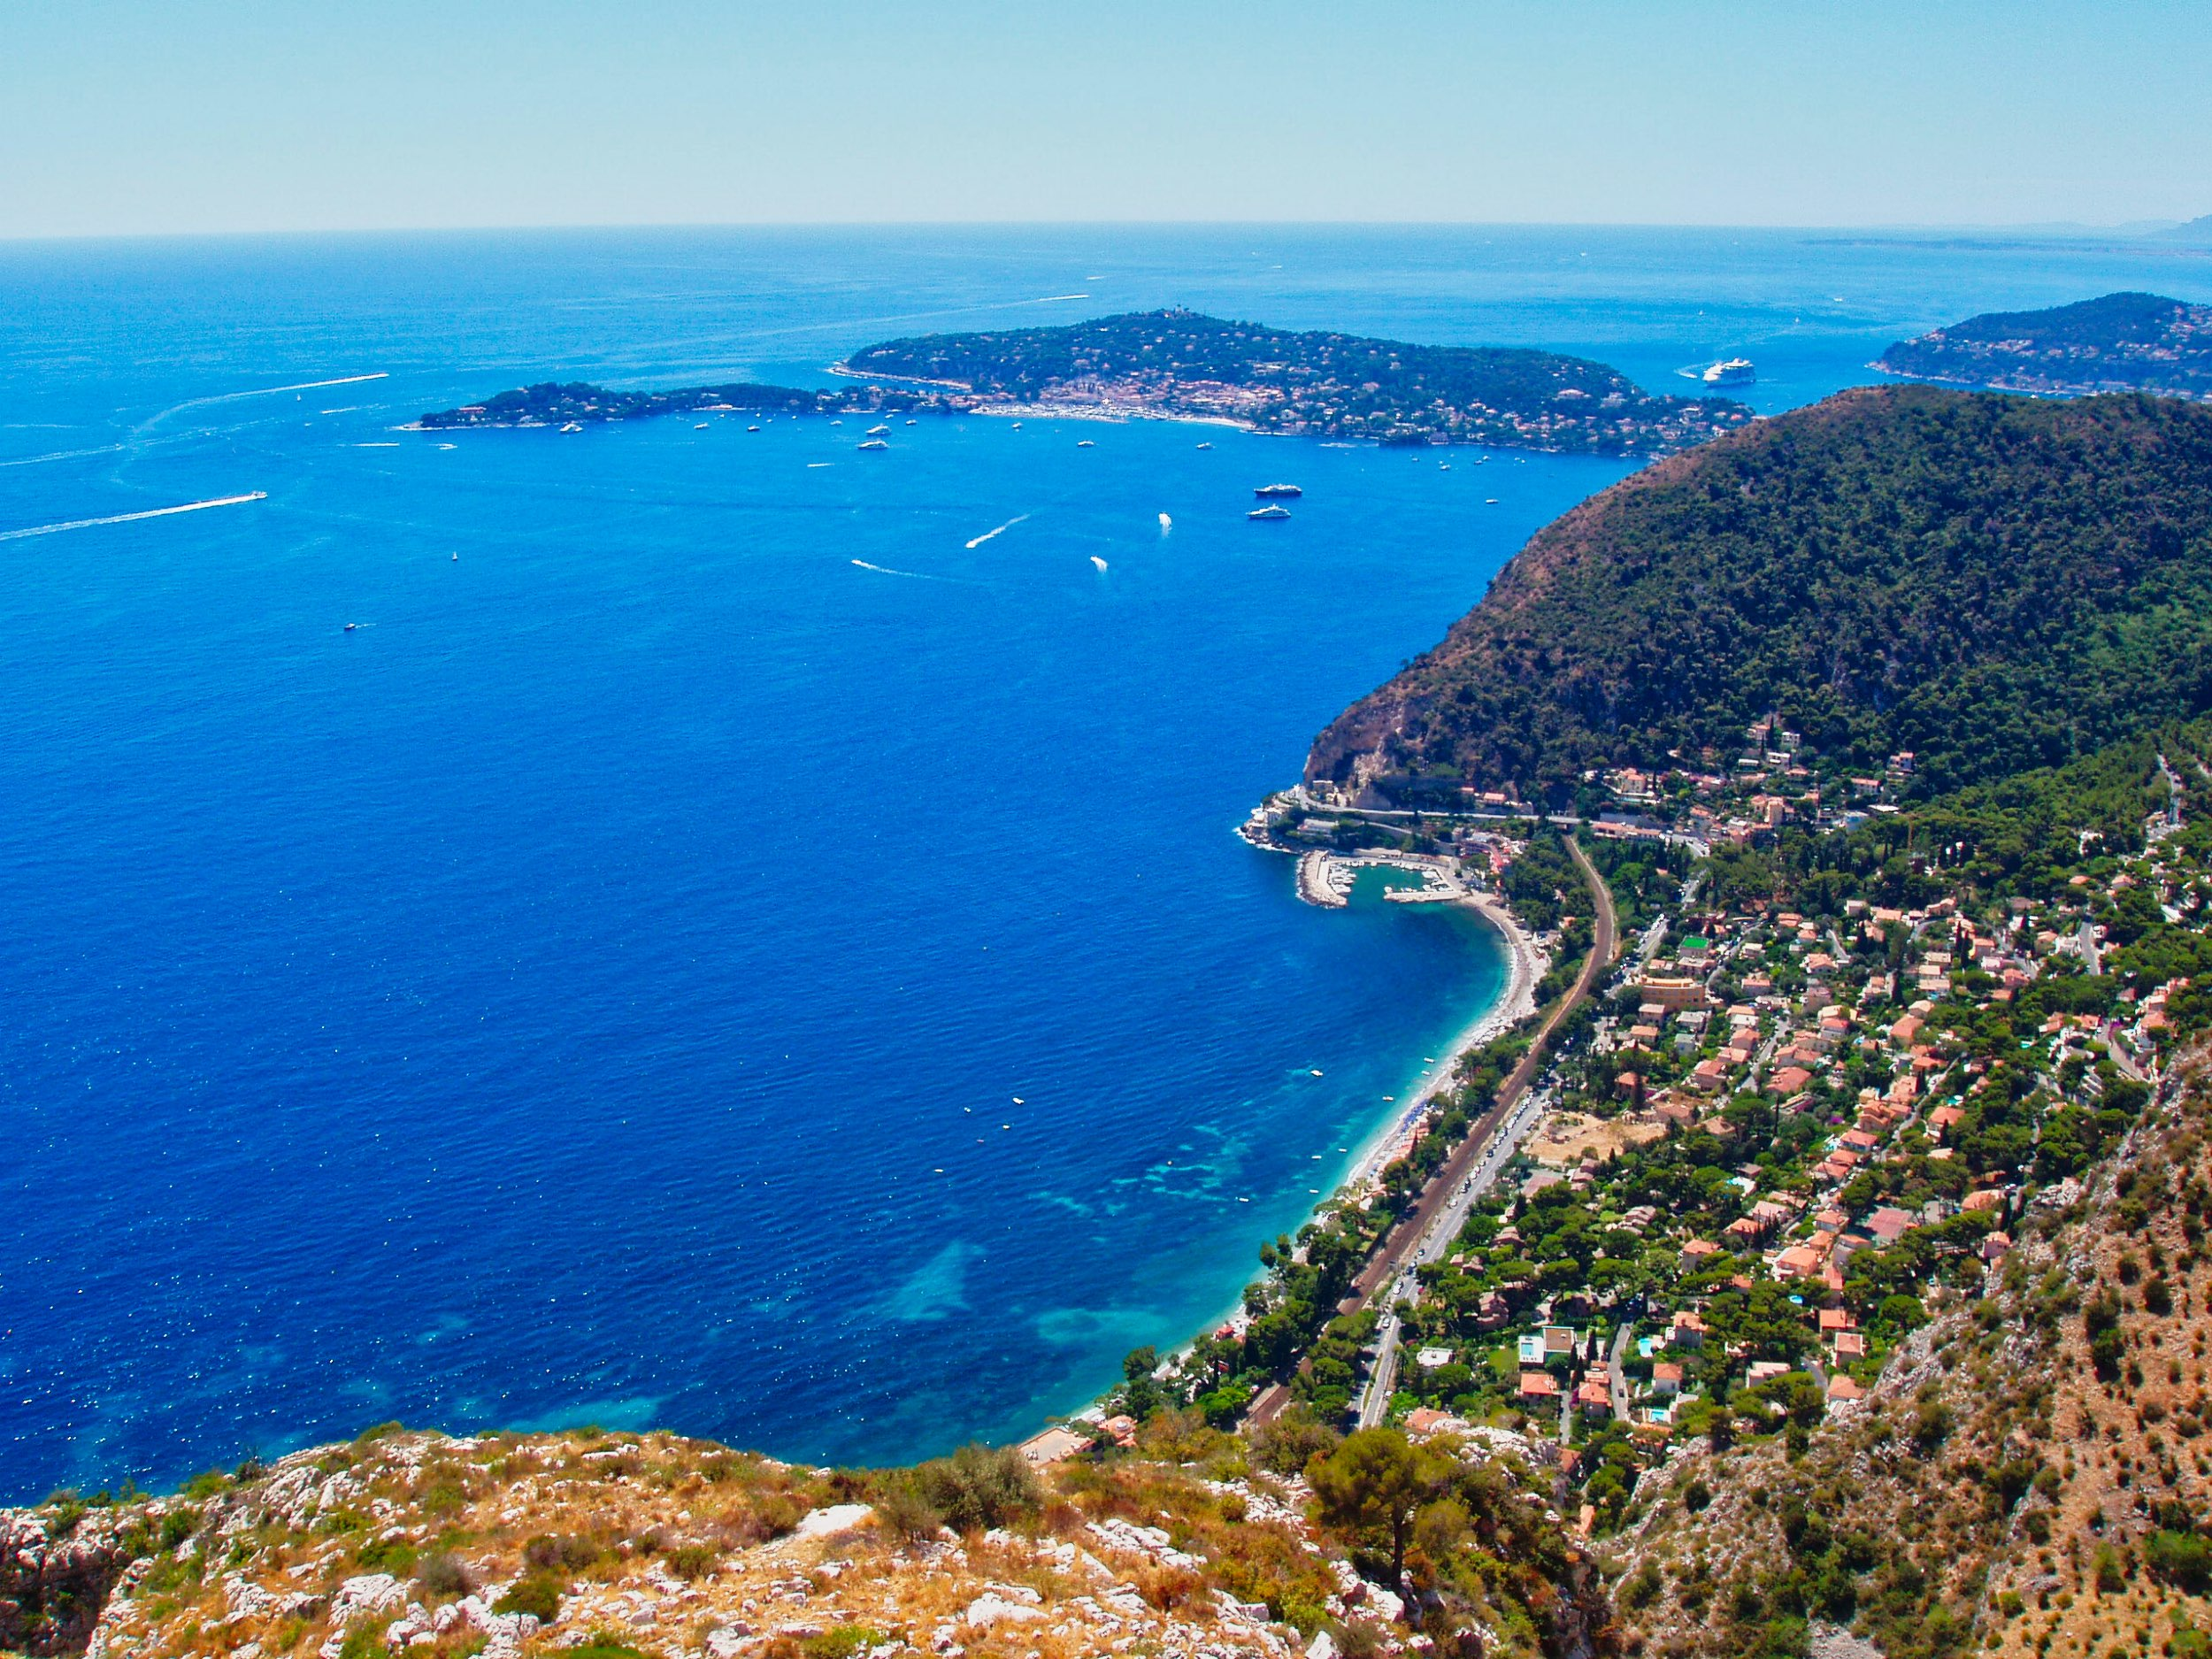 Saint-Jeanne-Cap-Ferrat viewed from The Route 'Moyenne Corniche'.